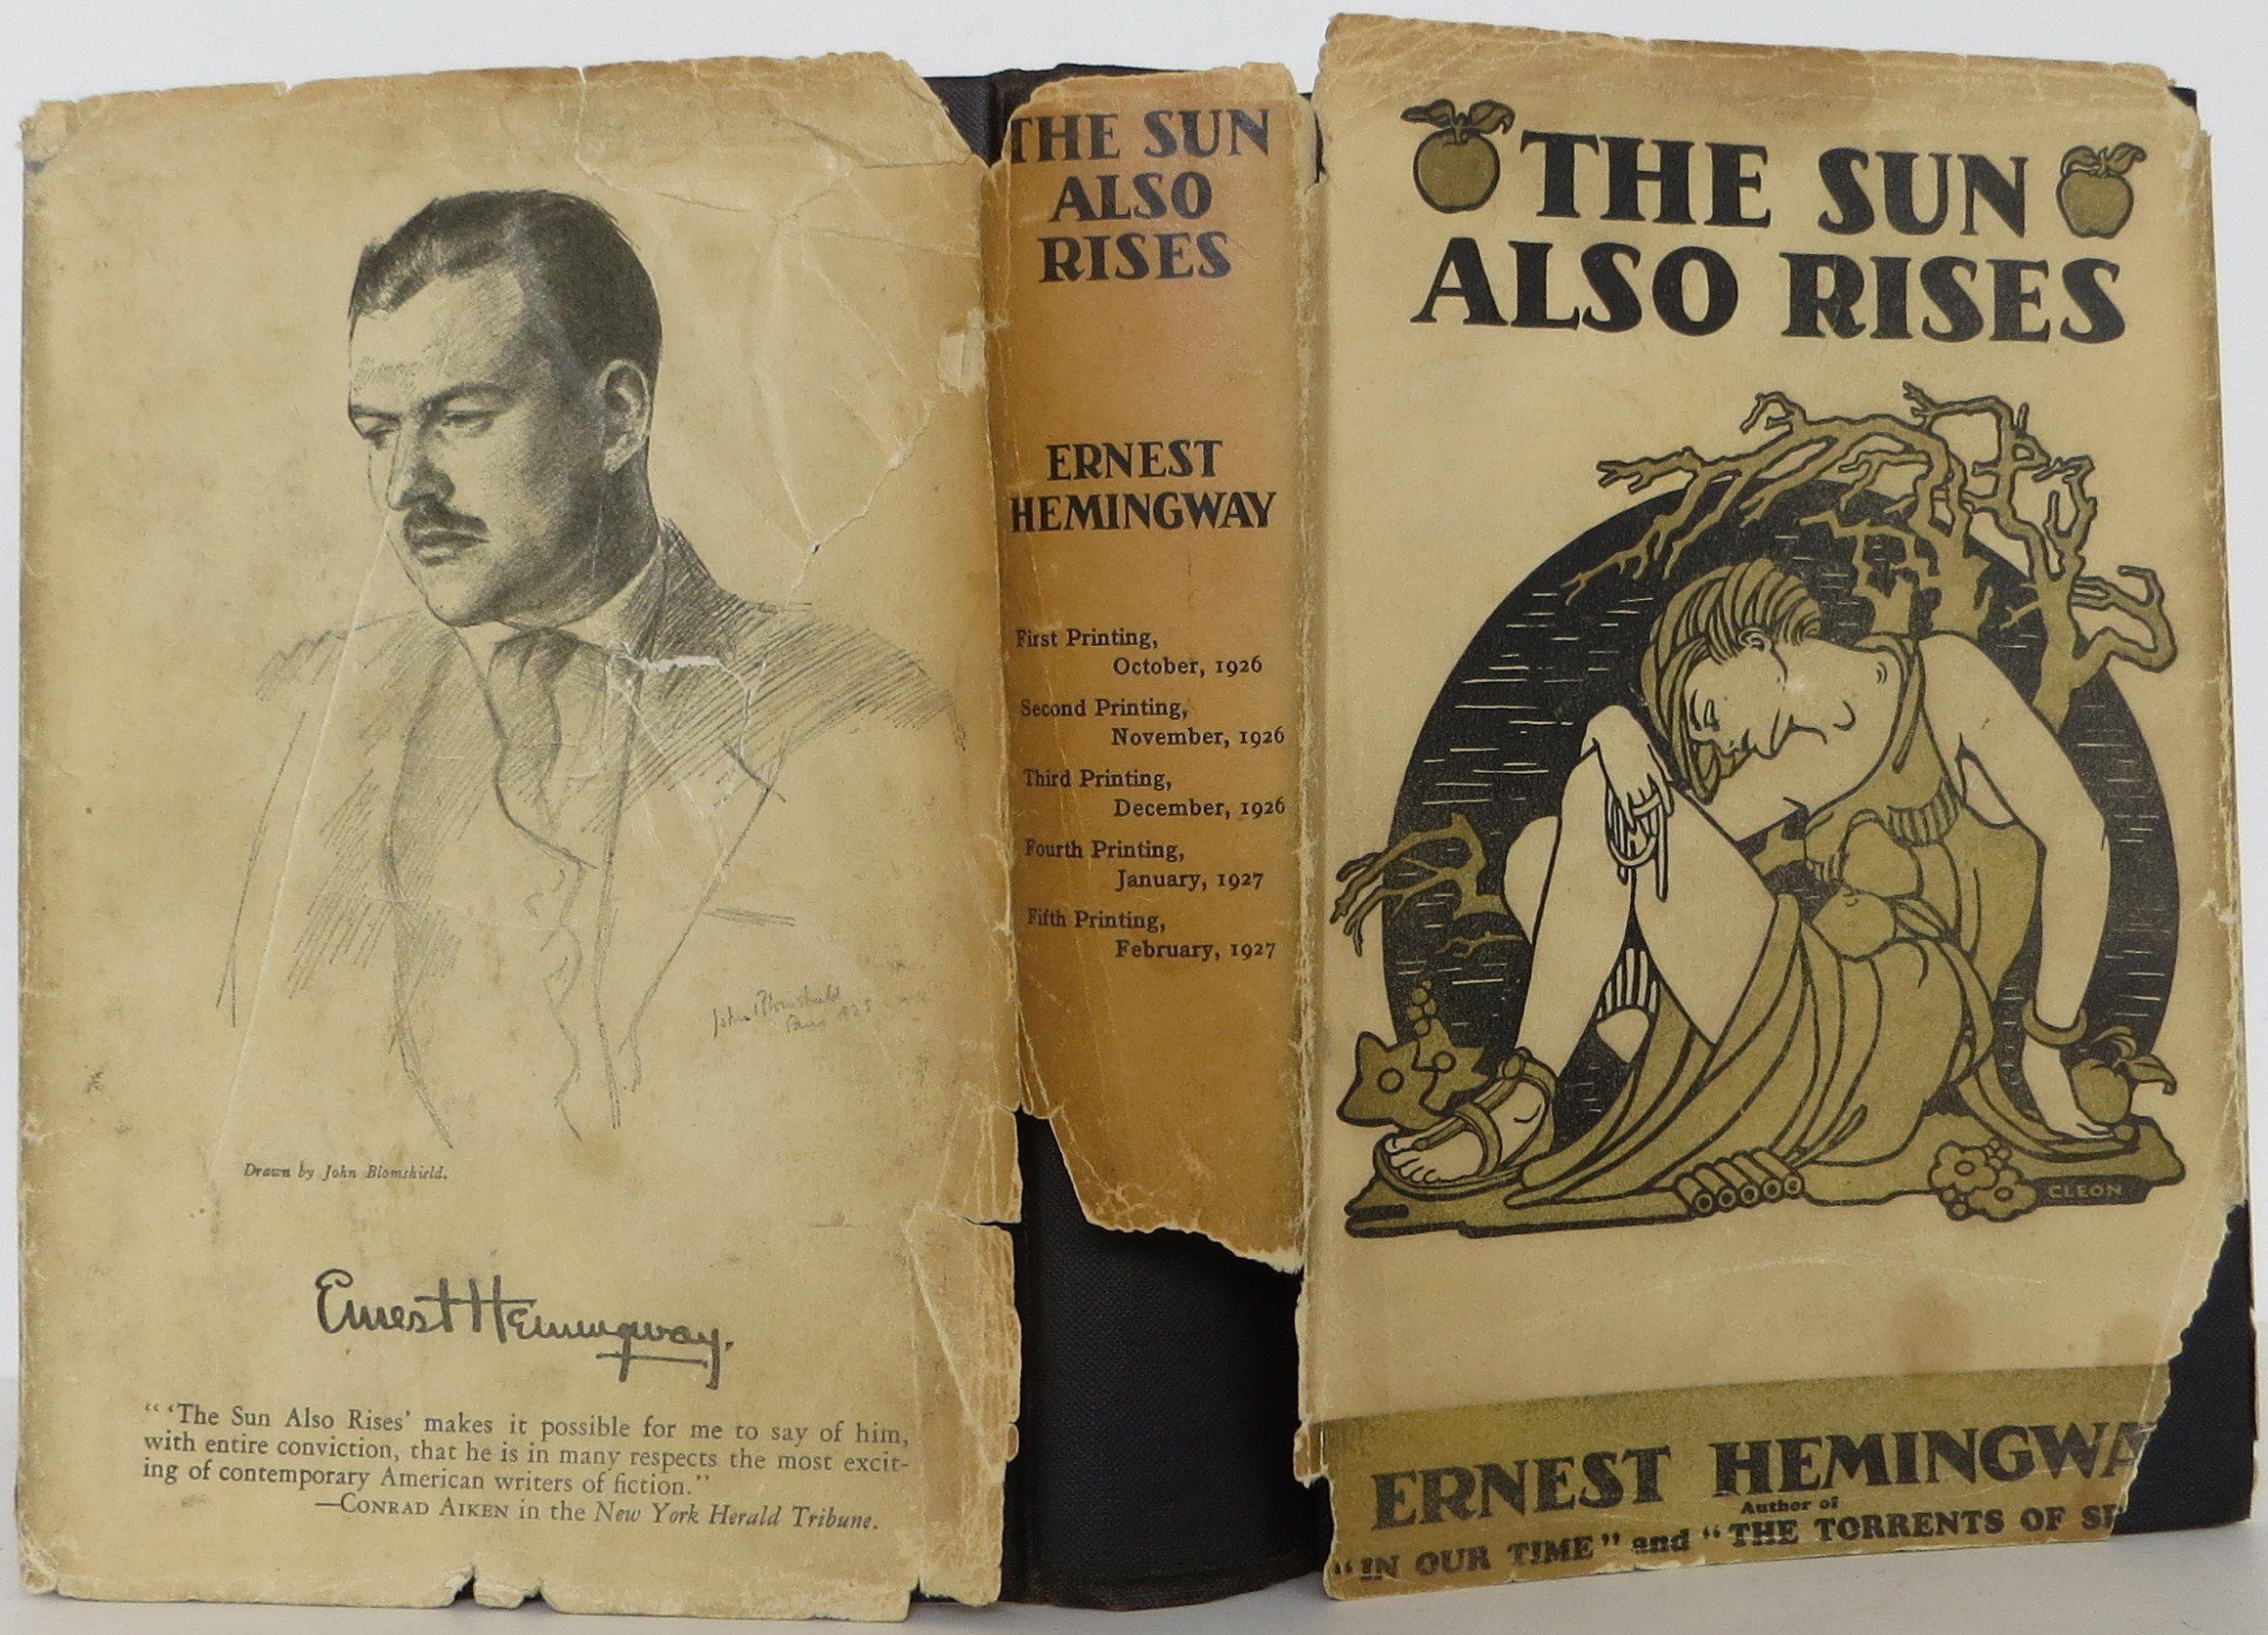 sun also rises ernest hemingway essays F scott fitzgerald's the great gatsby and ernest hemingway's the sun also rises both define the culture of the 1920s through the  more ernest hemingway essays.